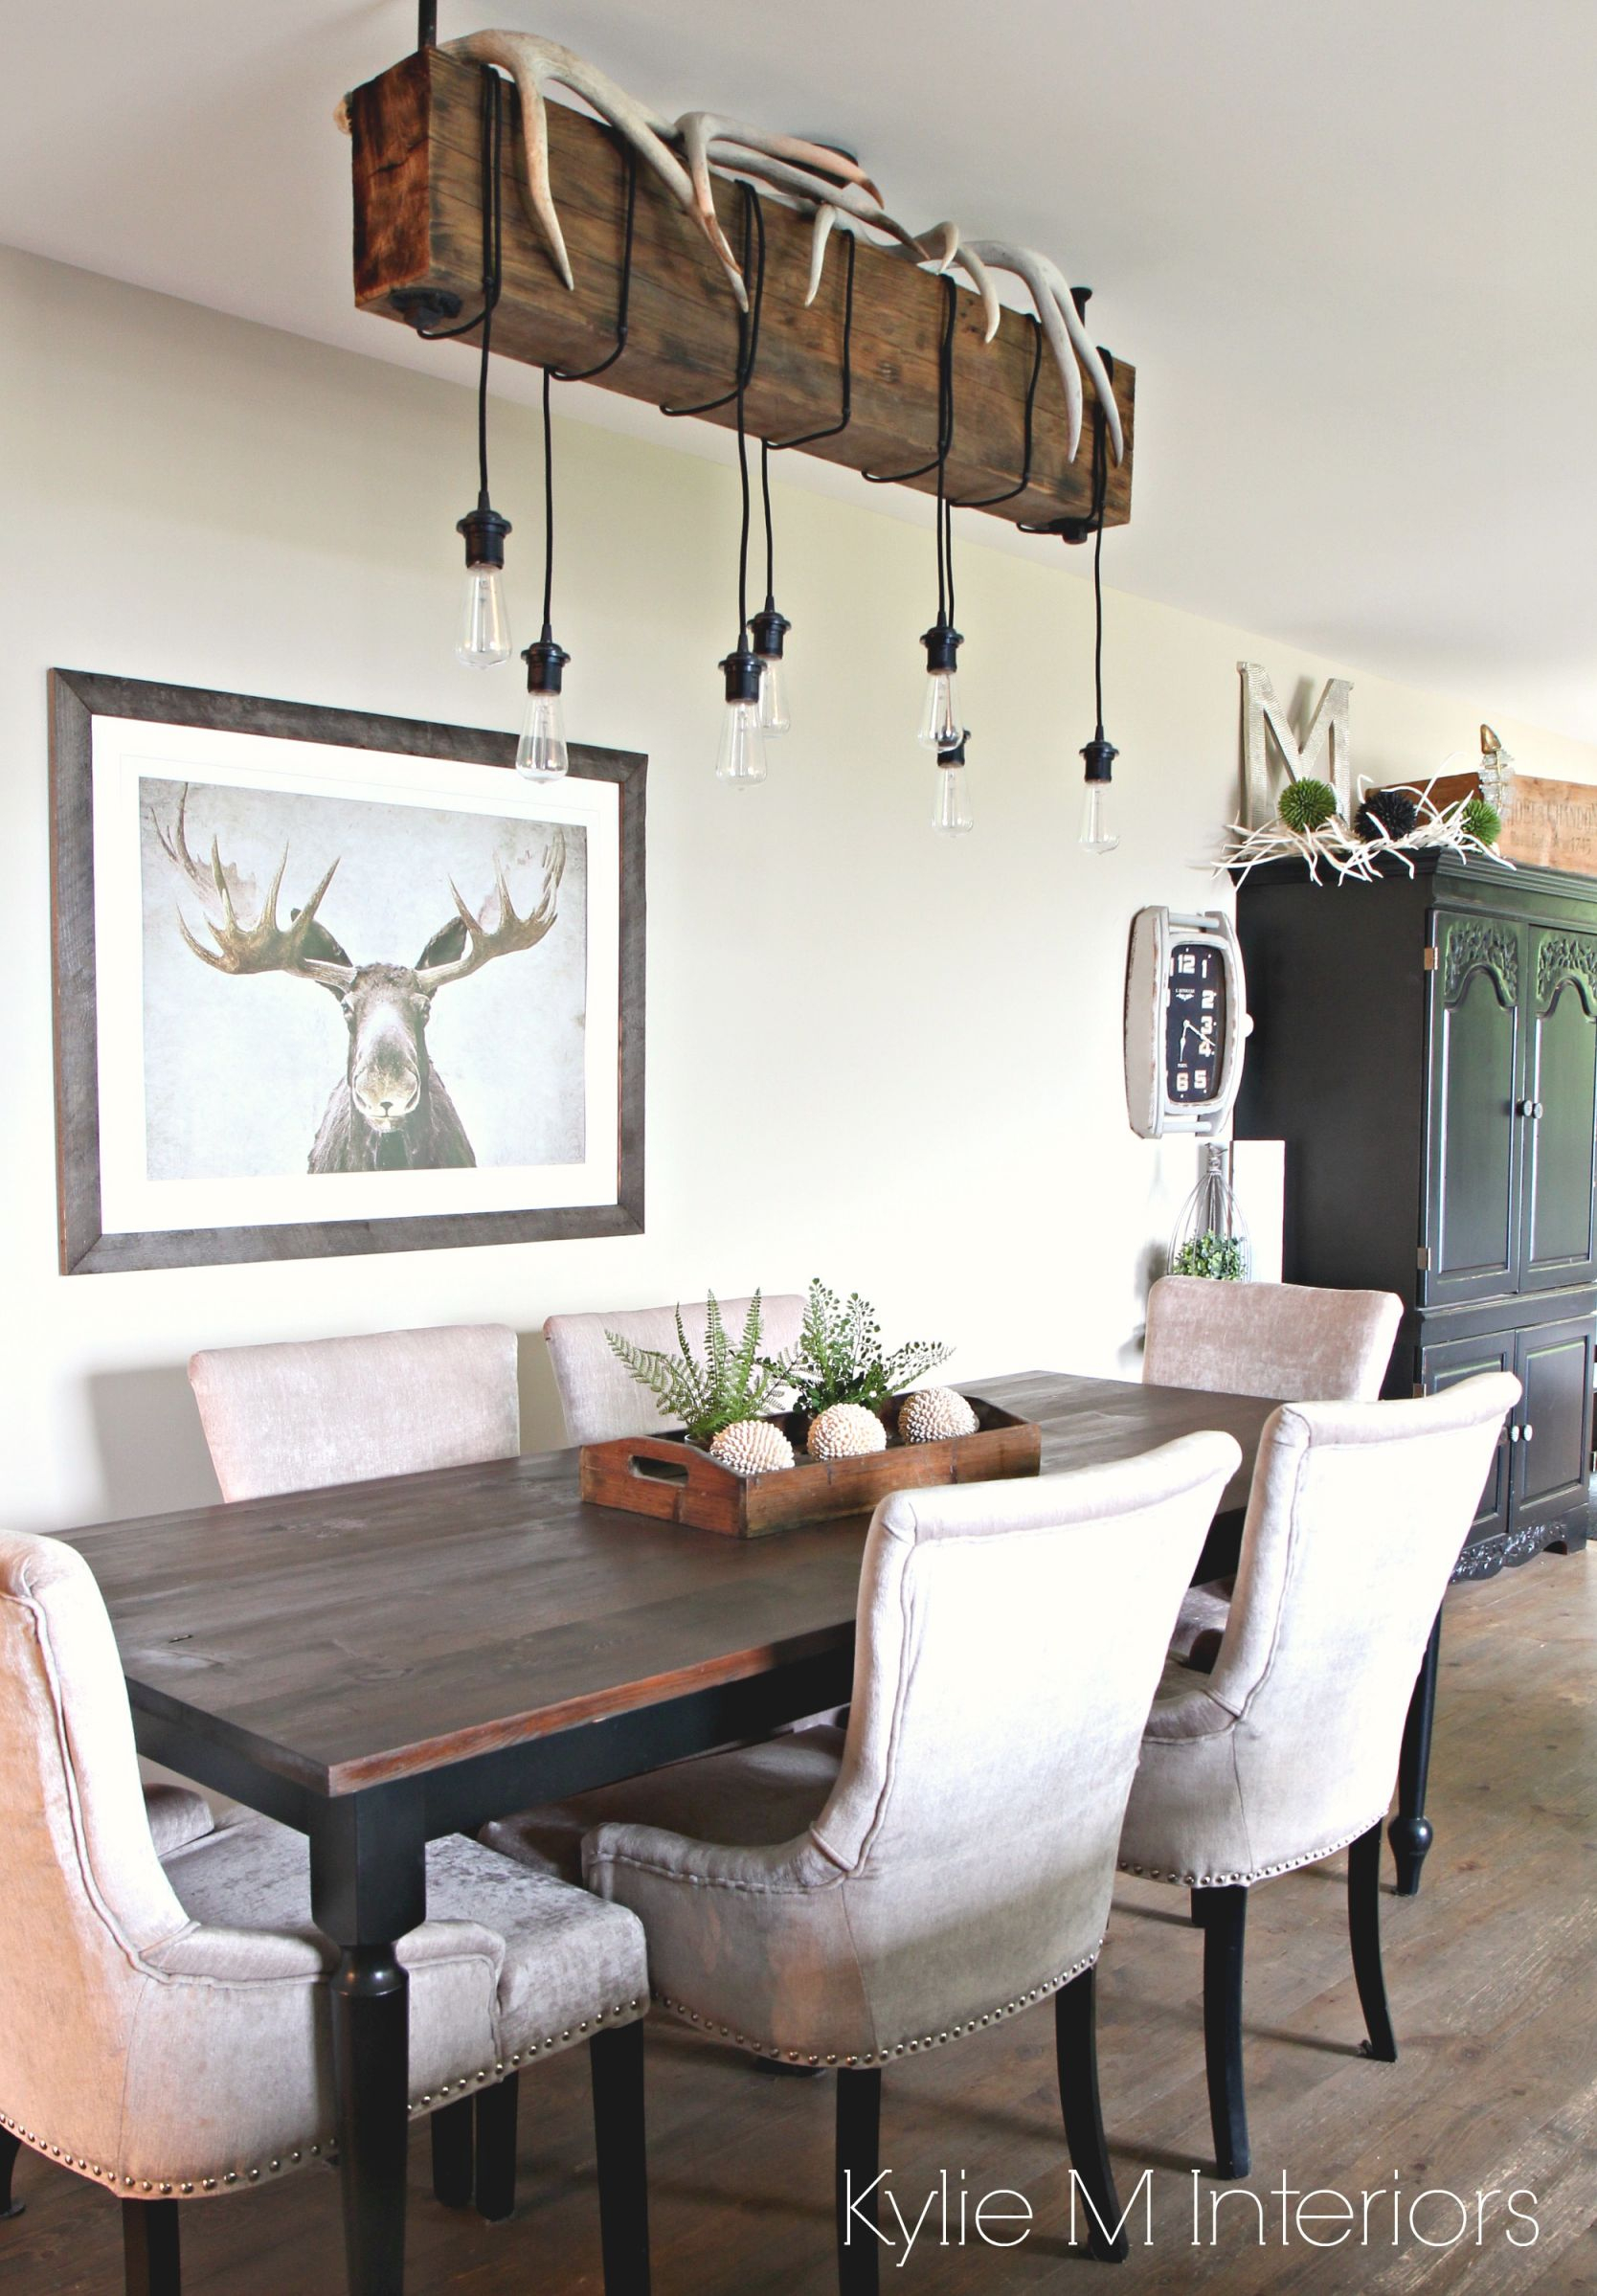 The Best Paint For A Drywall Wall In Good Shapekylie M with regard to Hunting Decor For Living Room